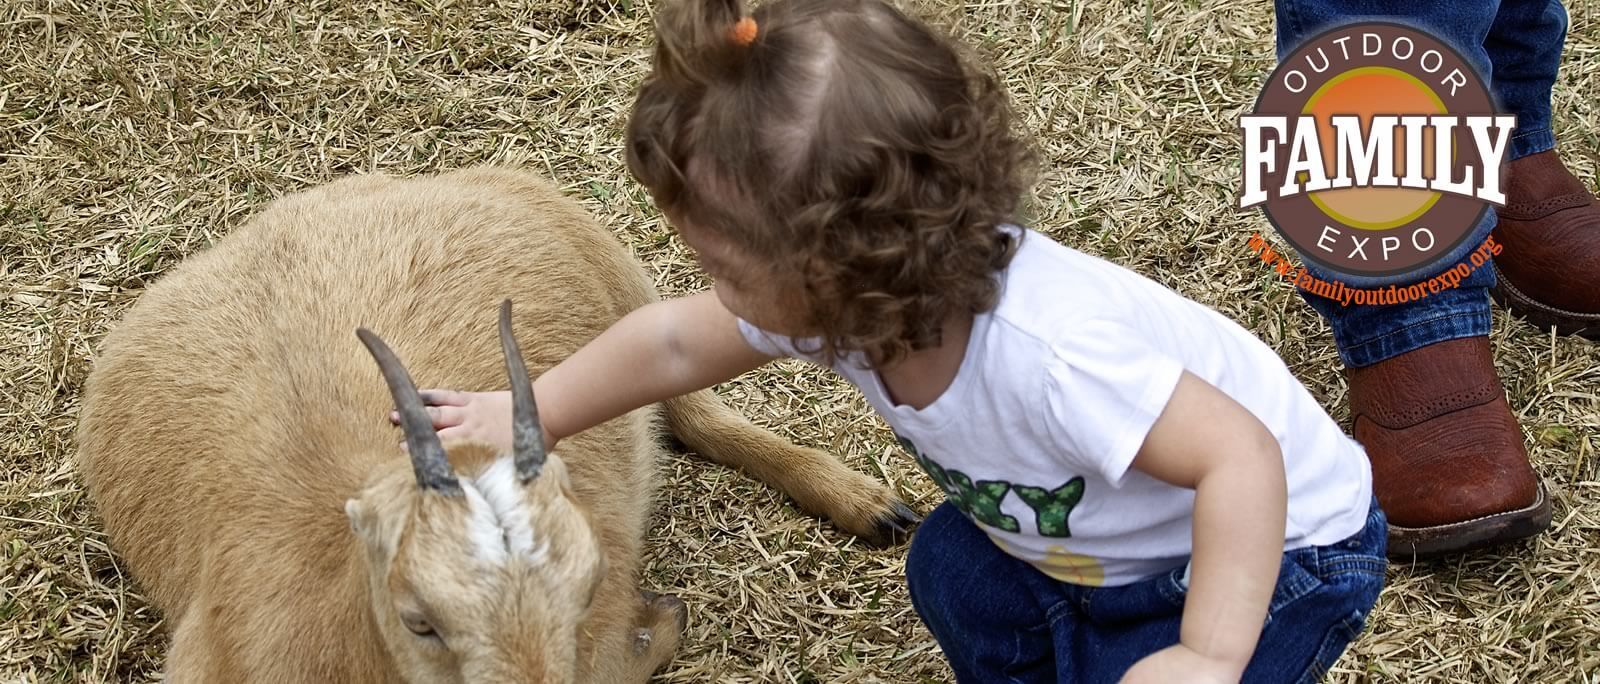 Petting at the Family Outdoor Expo